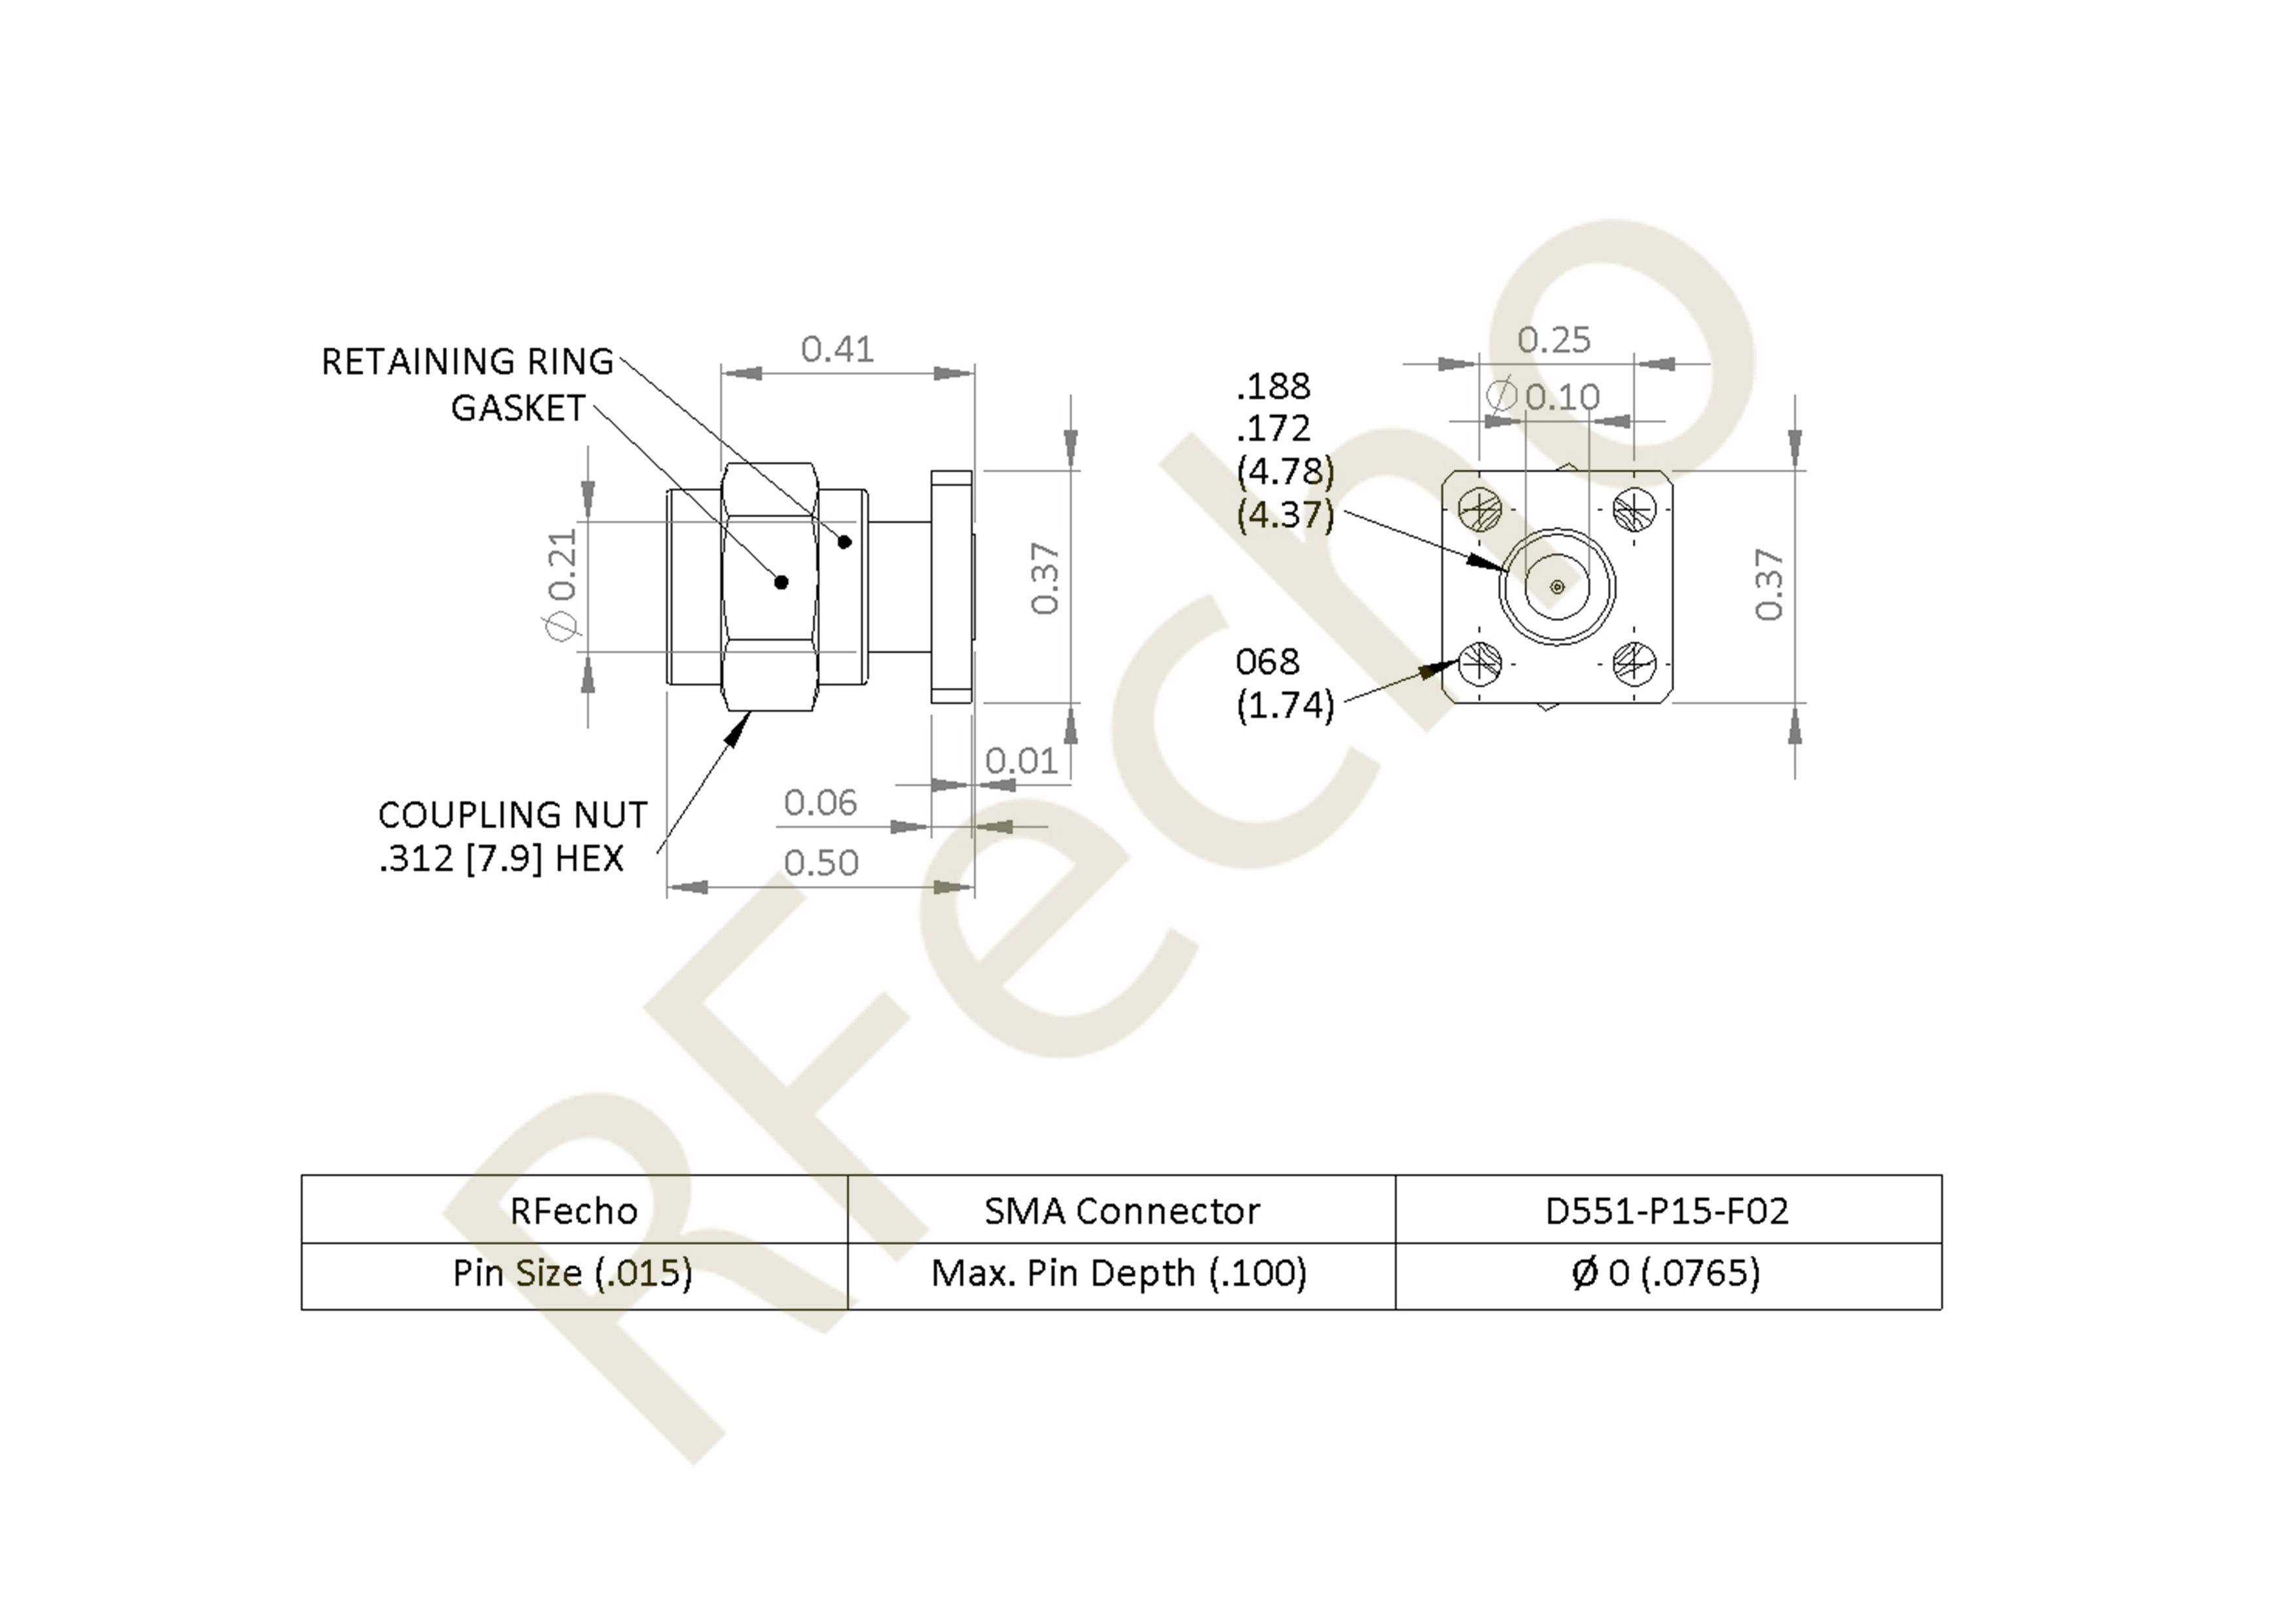 D551 P15 F02 outline SMA 27 GHz, 0.012″ Accept Pin Diameter, 4 Hole .375 Square″ Mounting Flange Female Connector